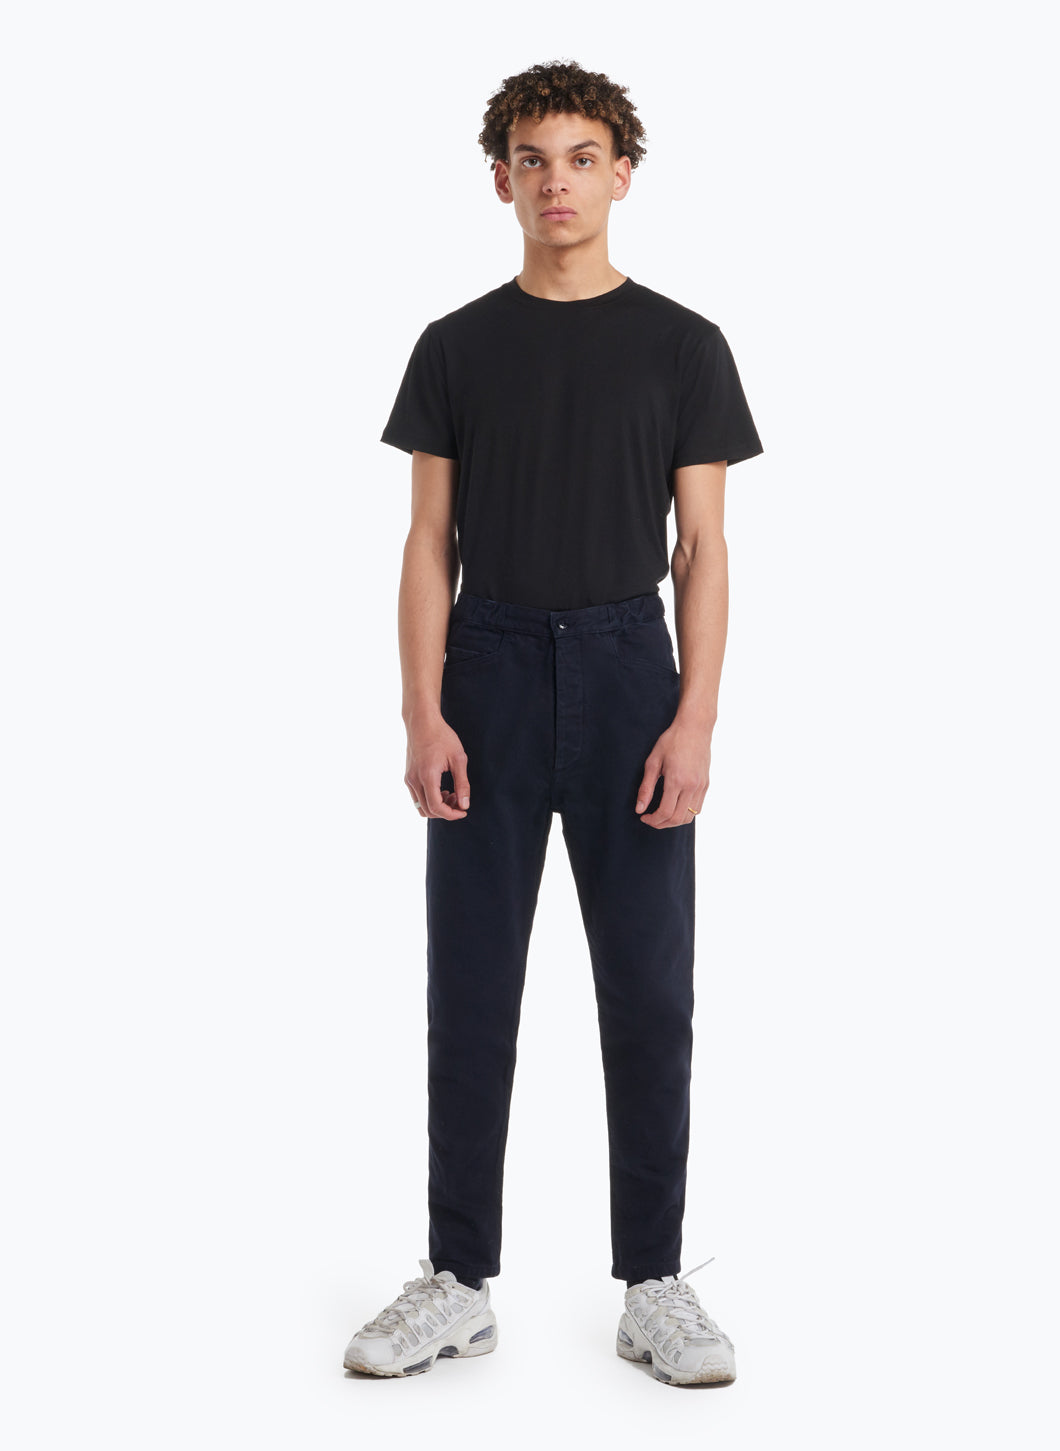 5-Pocket Pants in Navy Blue Denim